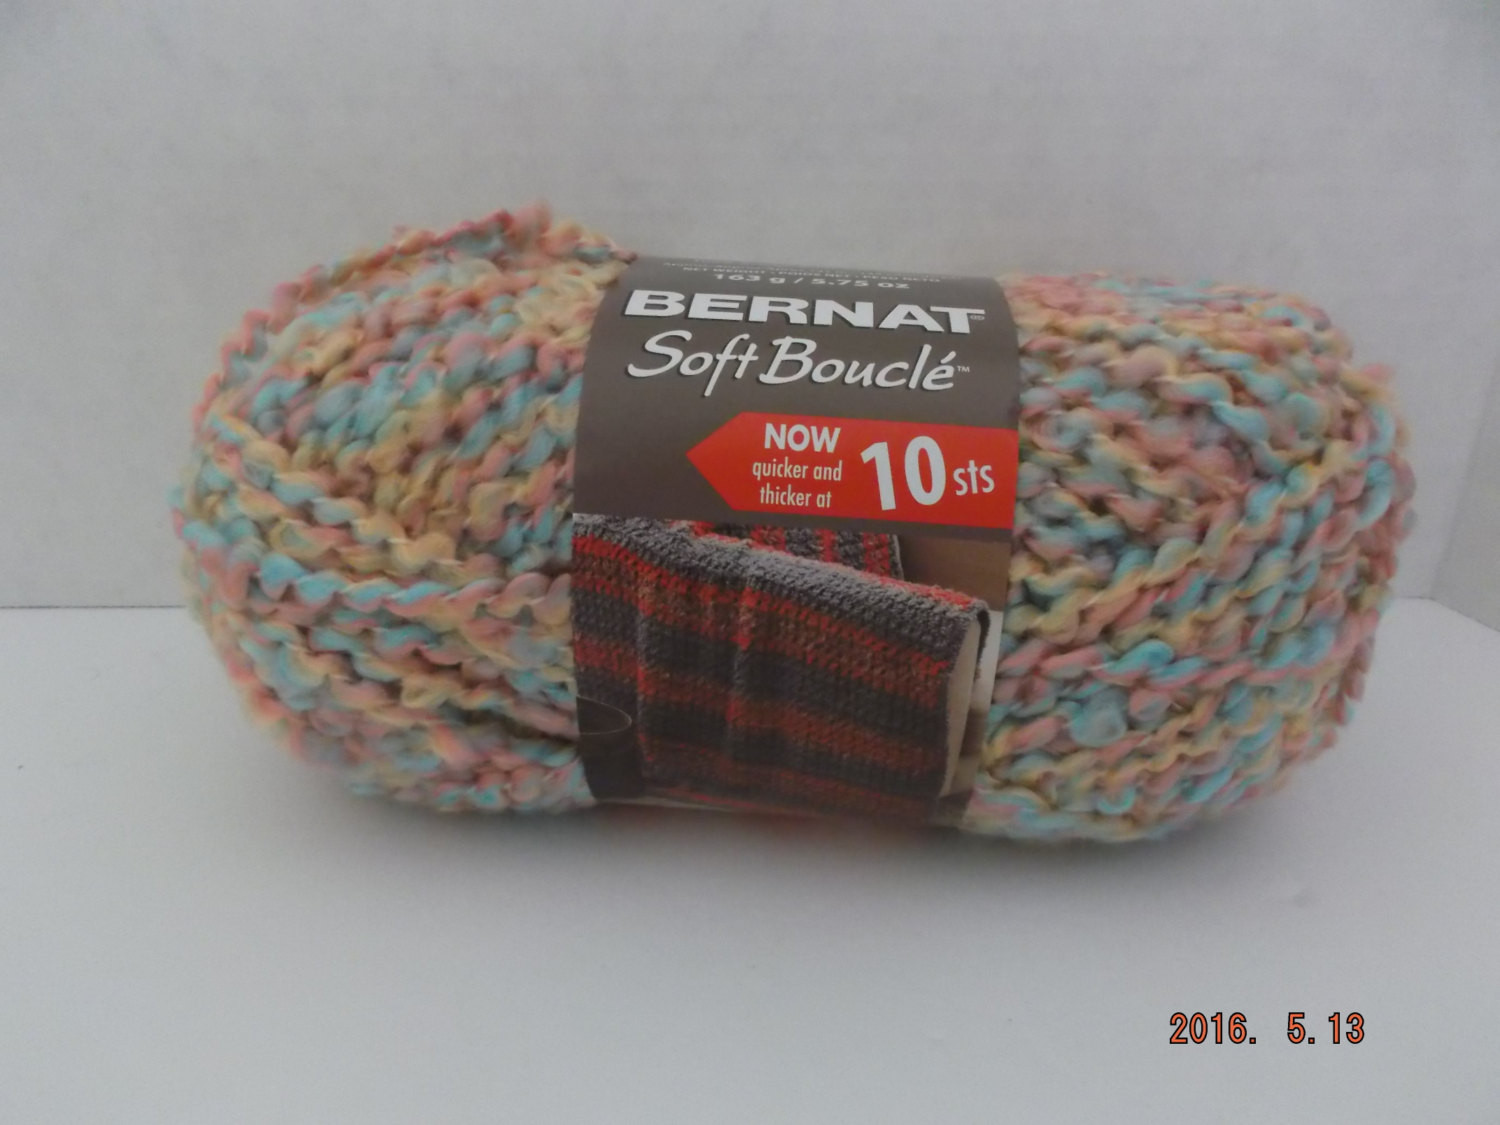 Bernat Soft Boucle Yarn Colour Pastel Palette 163